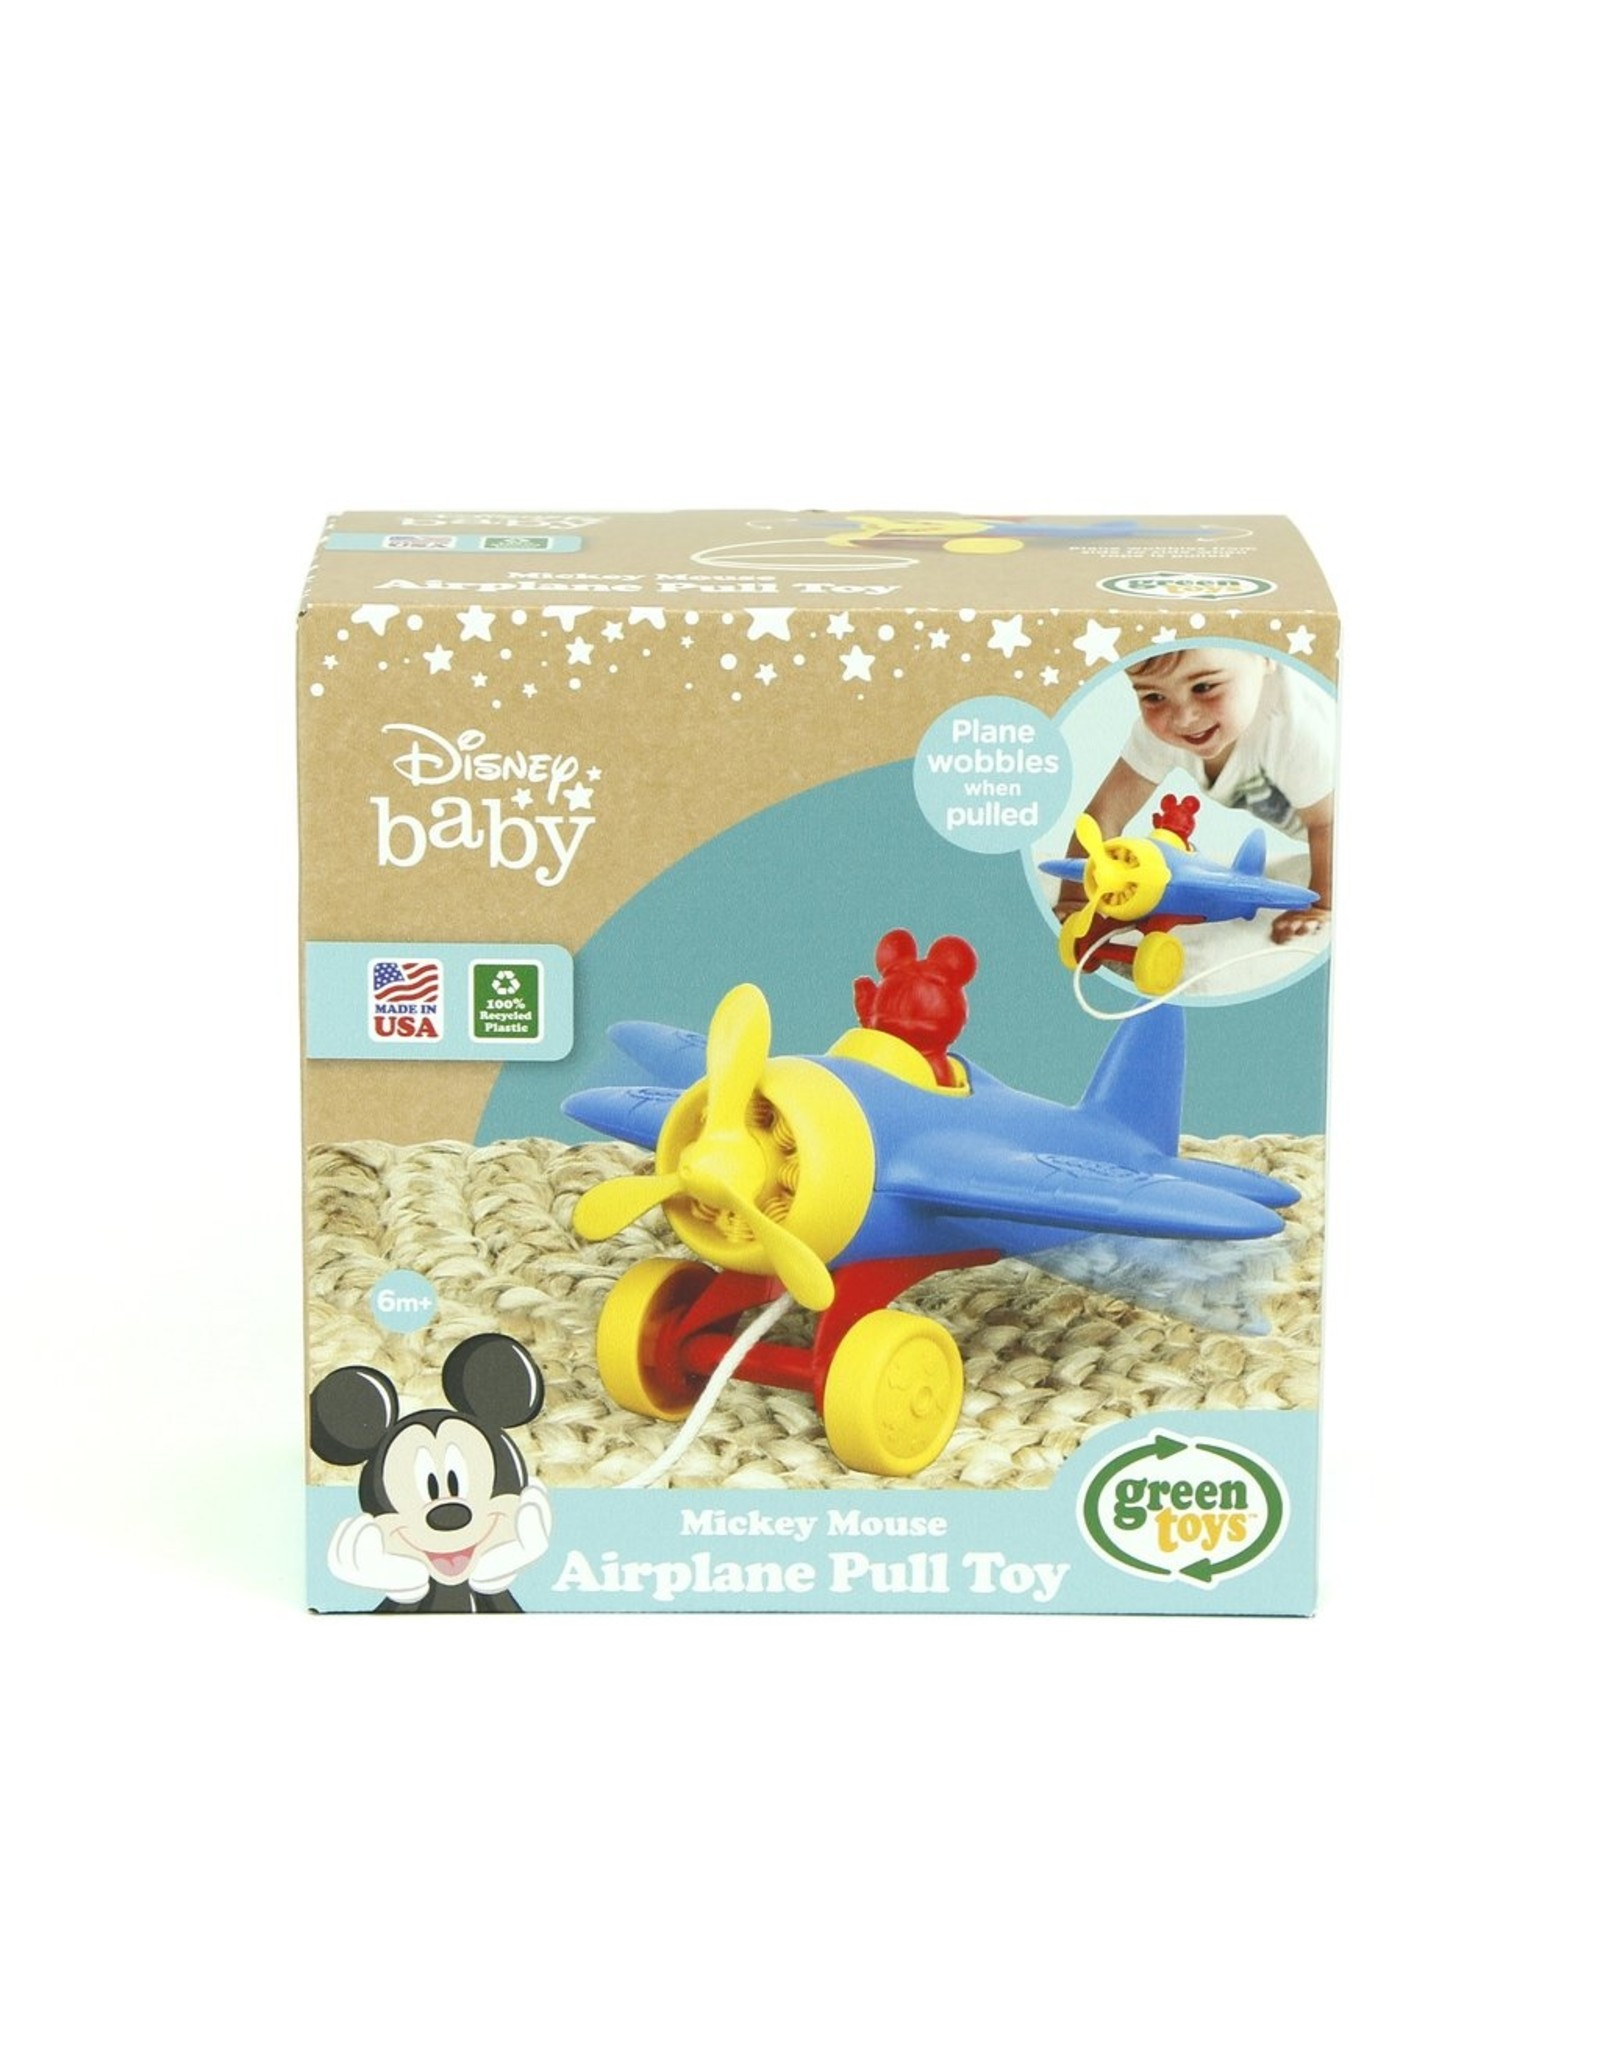 Green Toys GT Mickey Mouse Airplane Pull Toy